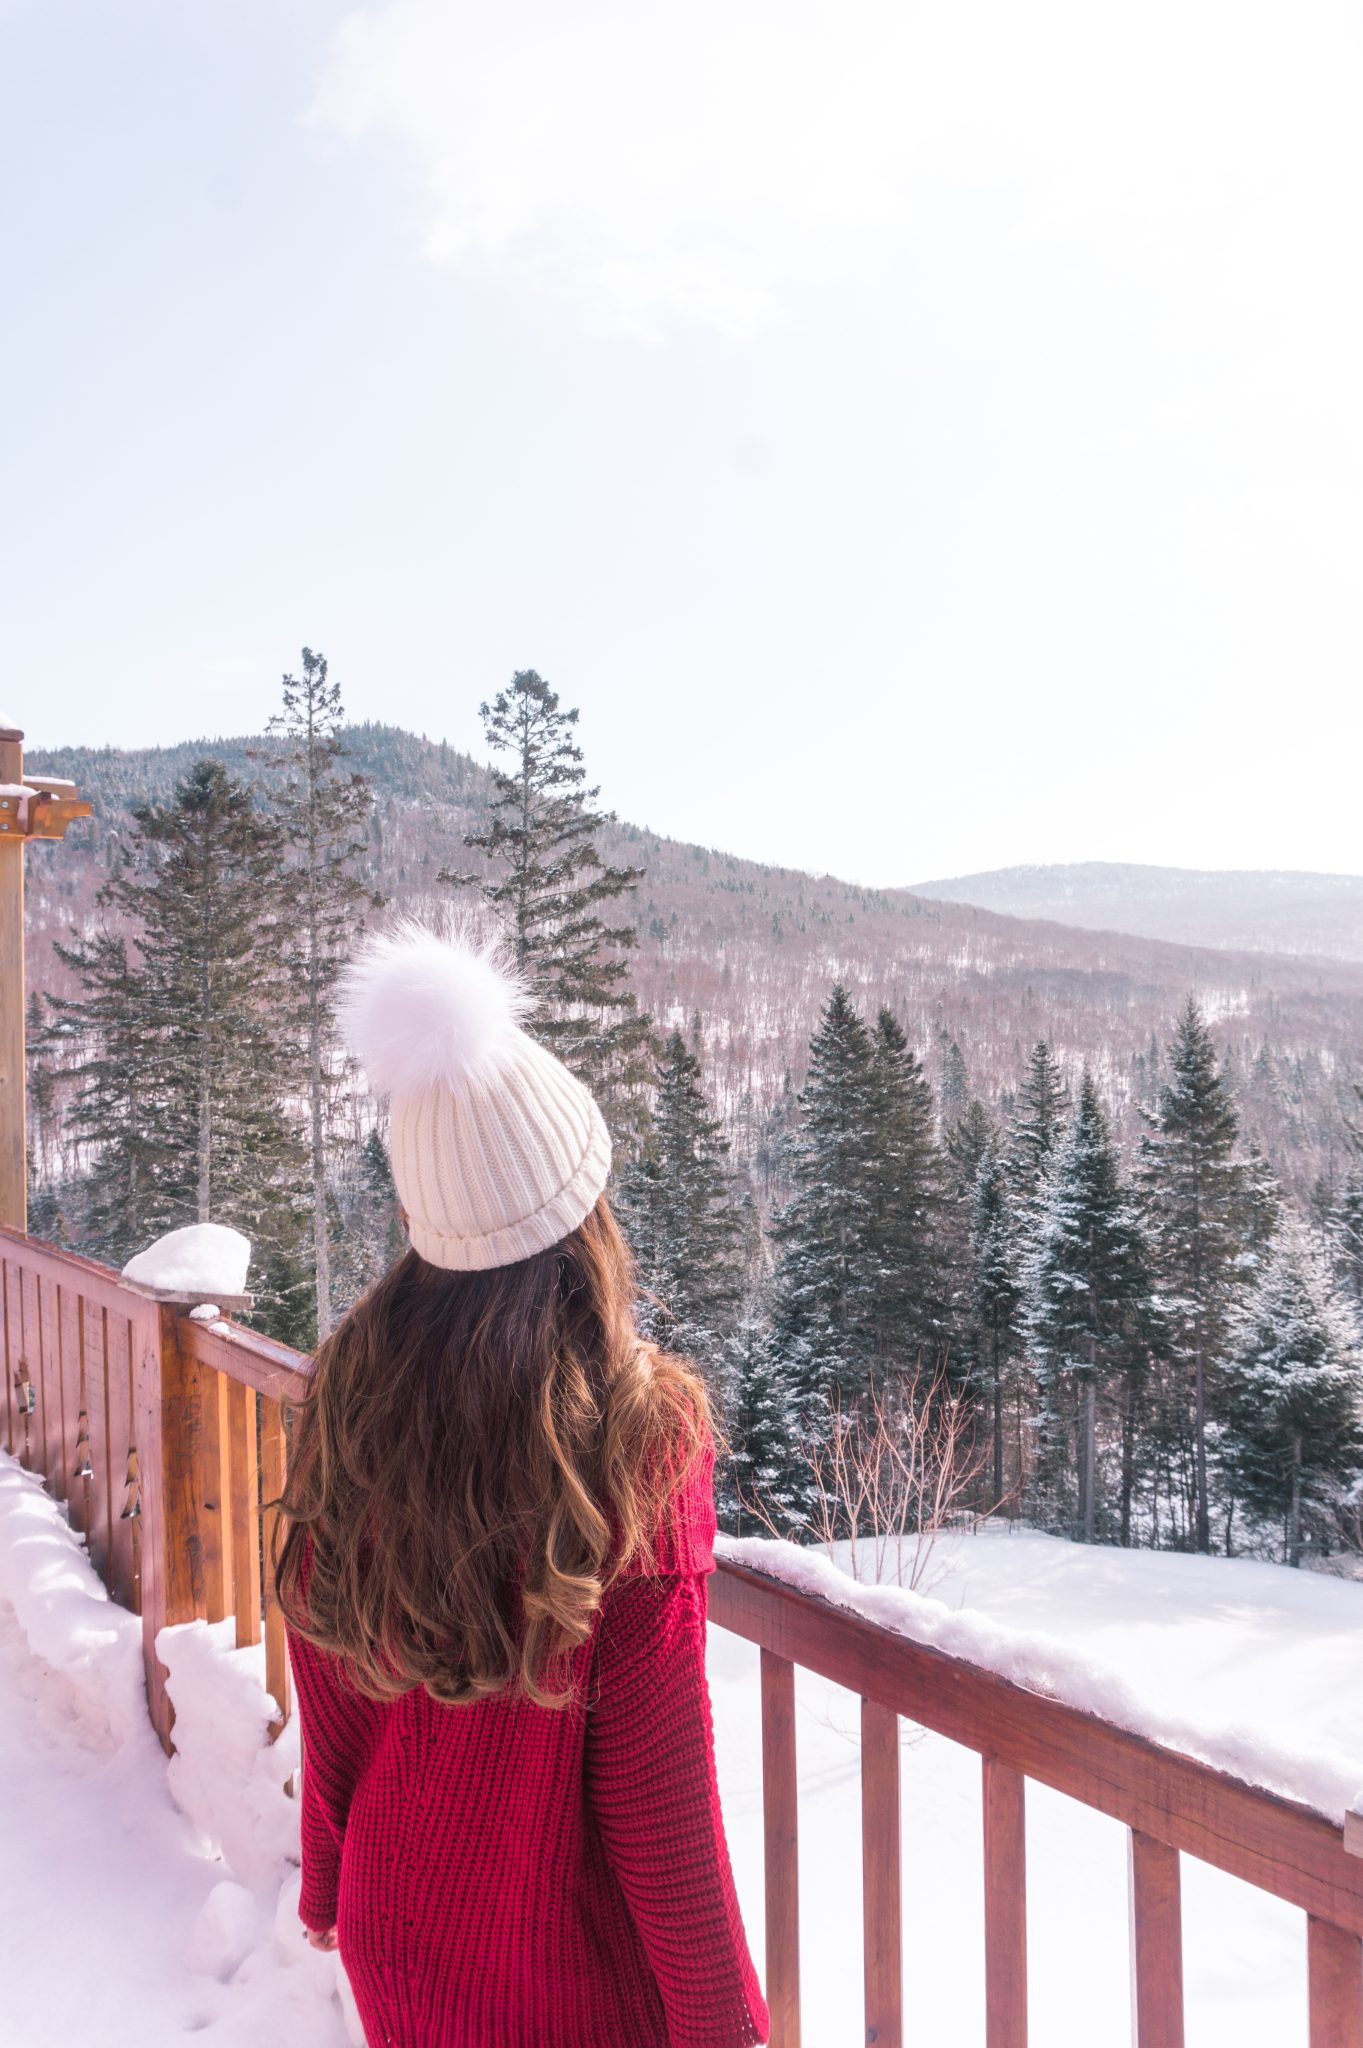 7 Things to Do in Quebec City in Winter - Go Snowshoeing